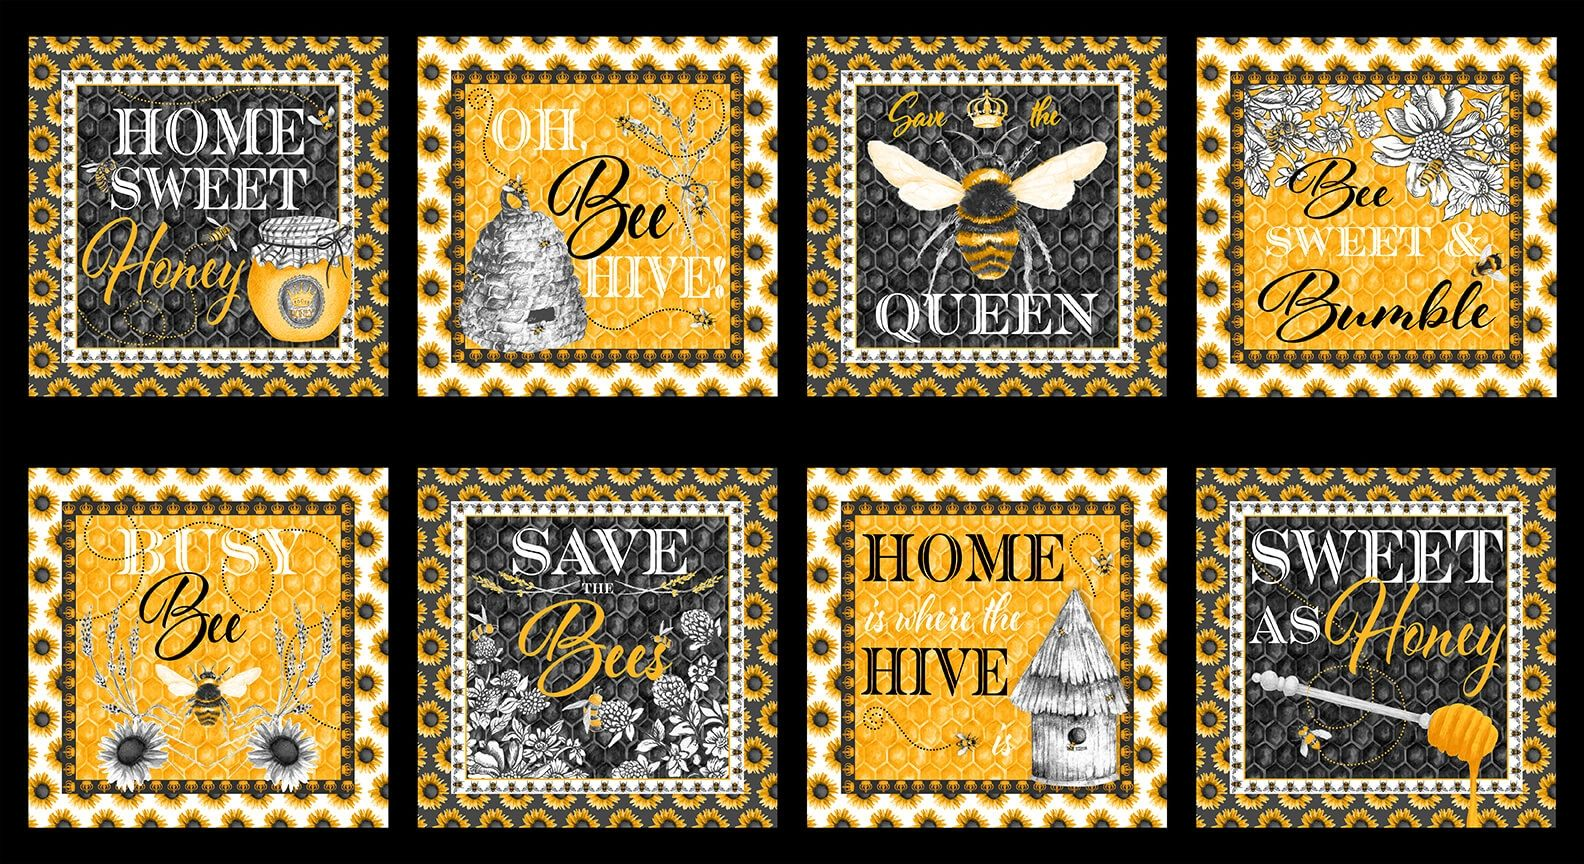 Show Me The Honey by Blank Quilting 100 % Cotton